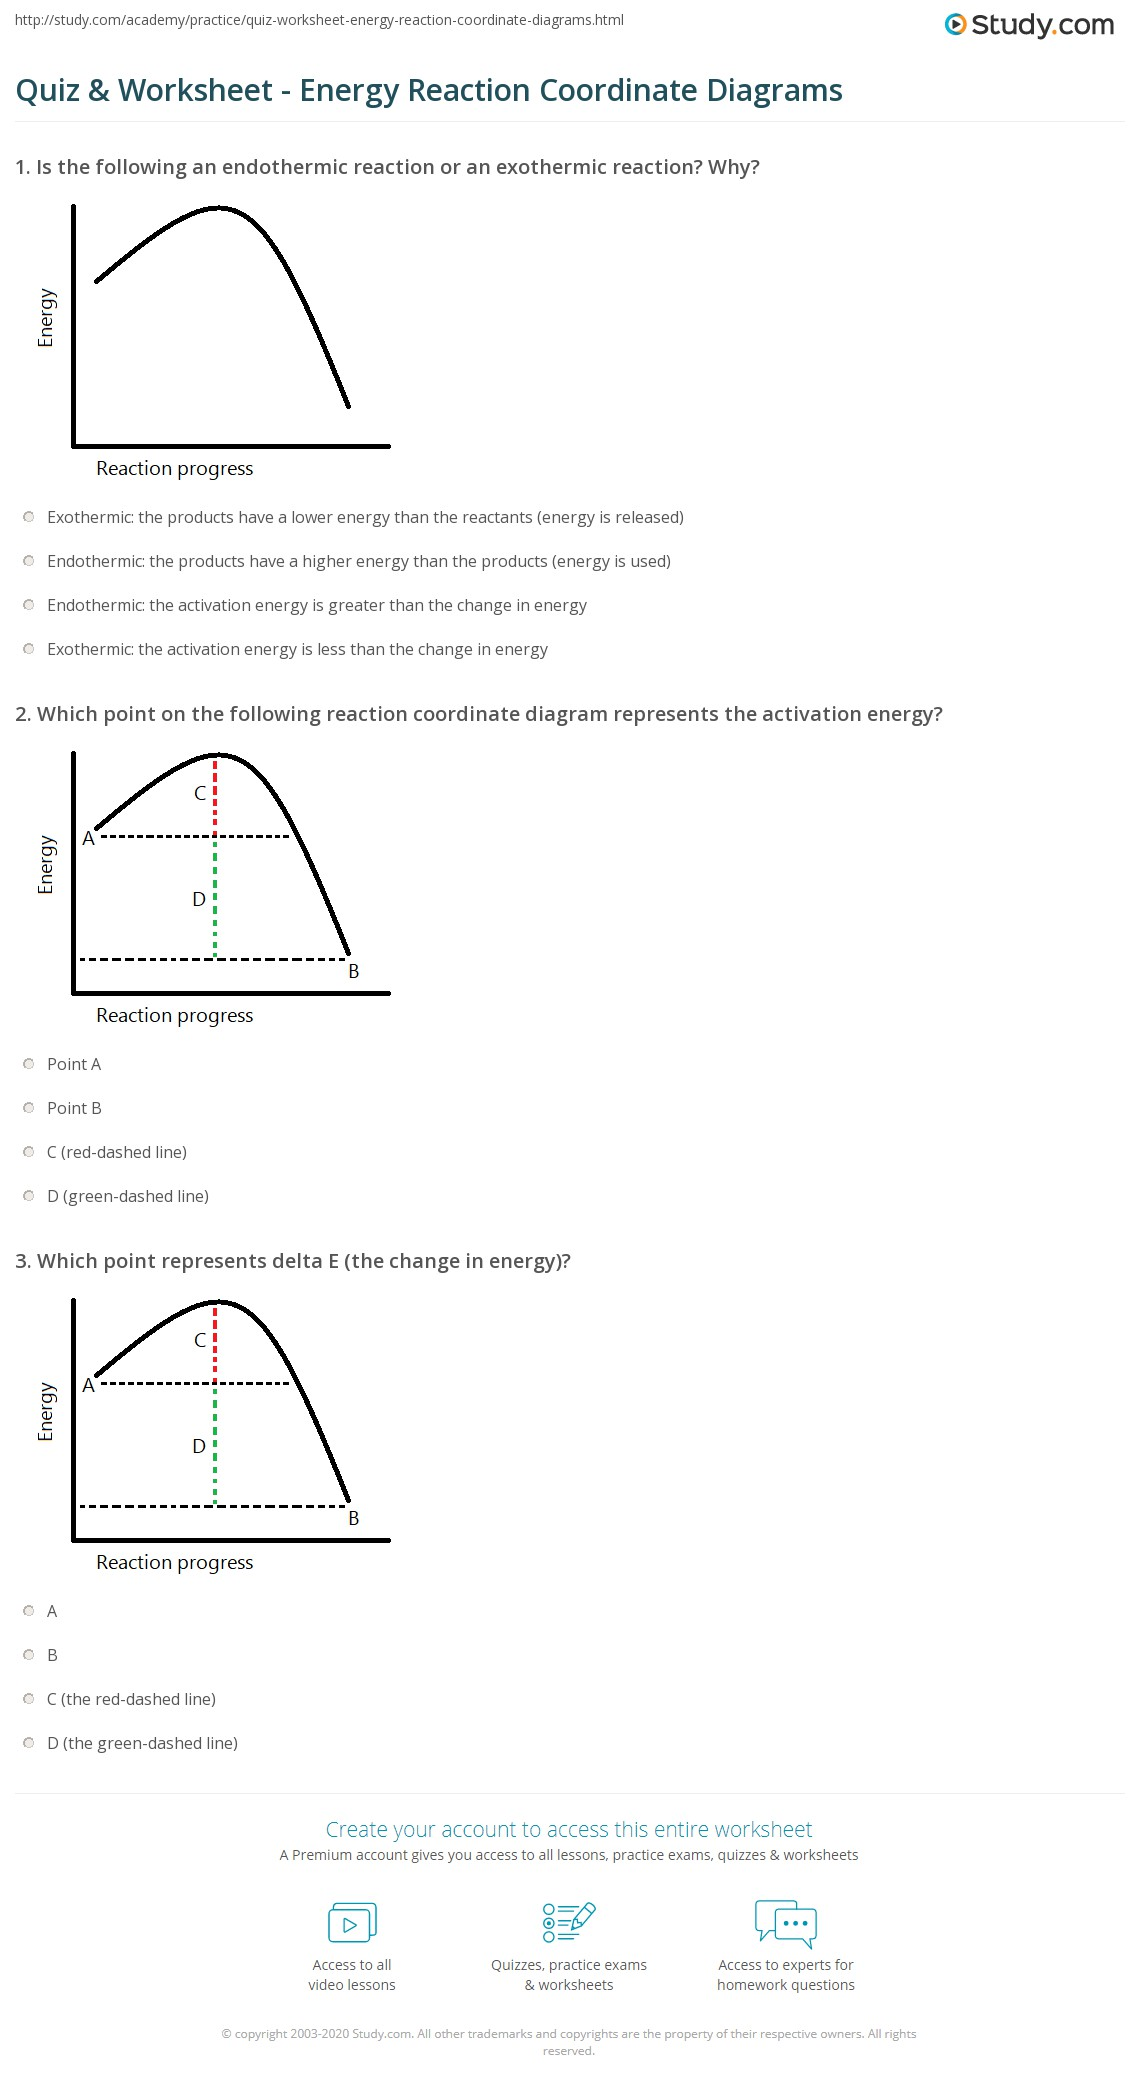 potential energy diagram worksheet key 97 tj wiring quiz and reaction coordinate diagrams